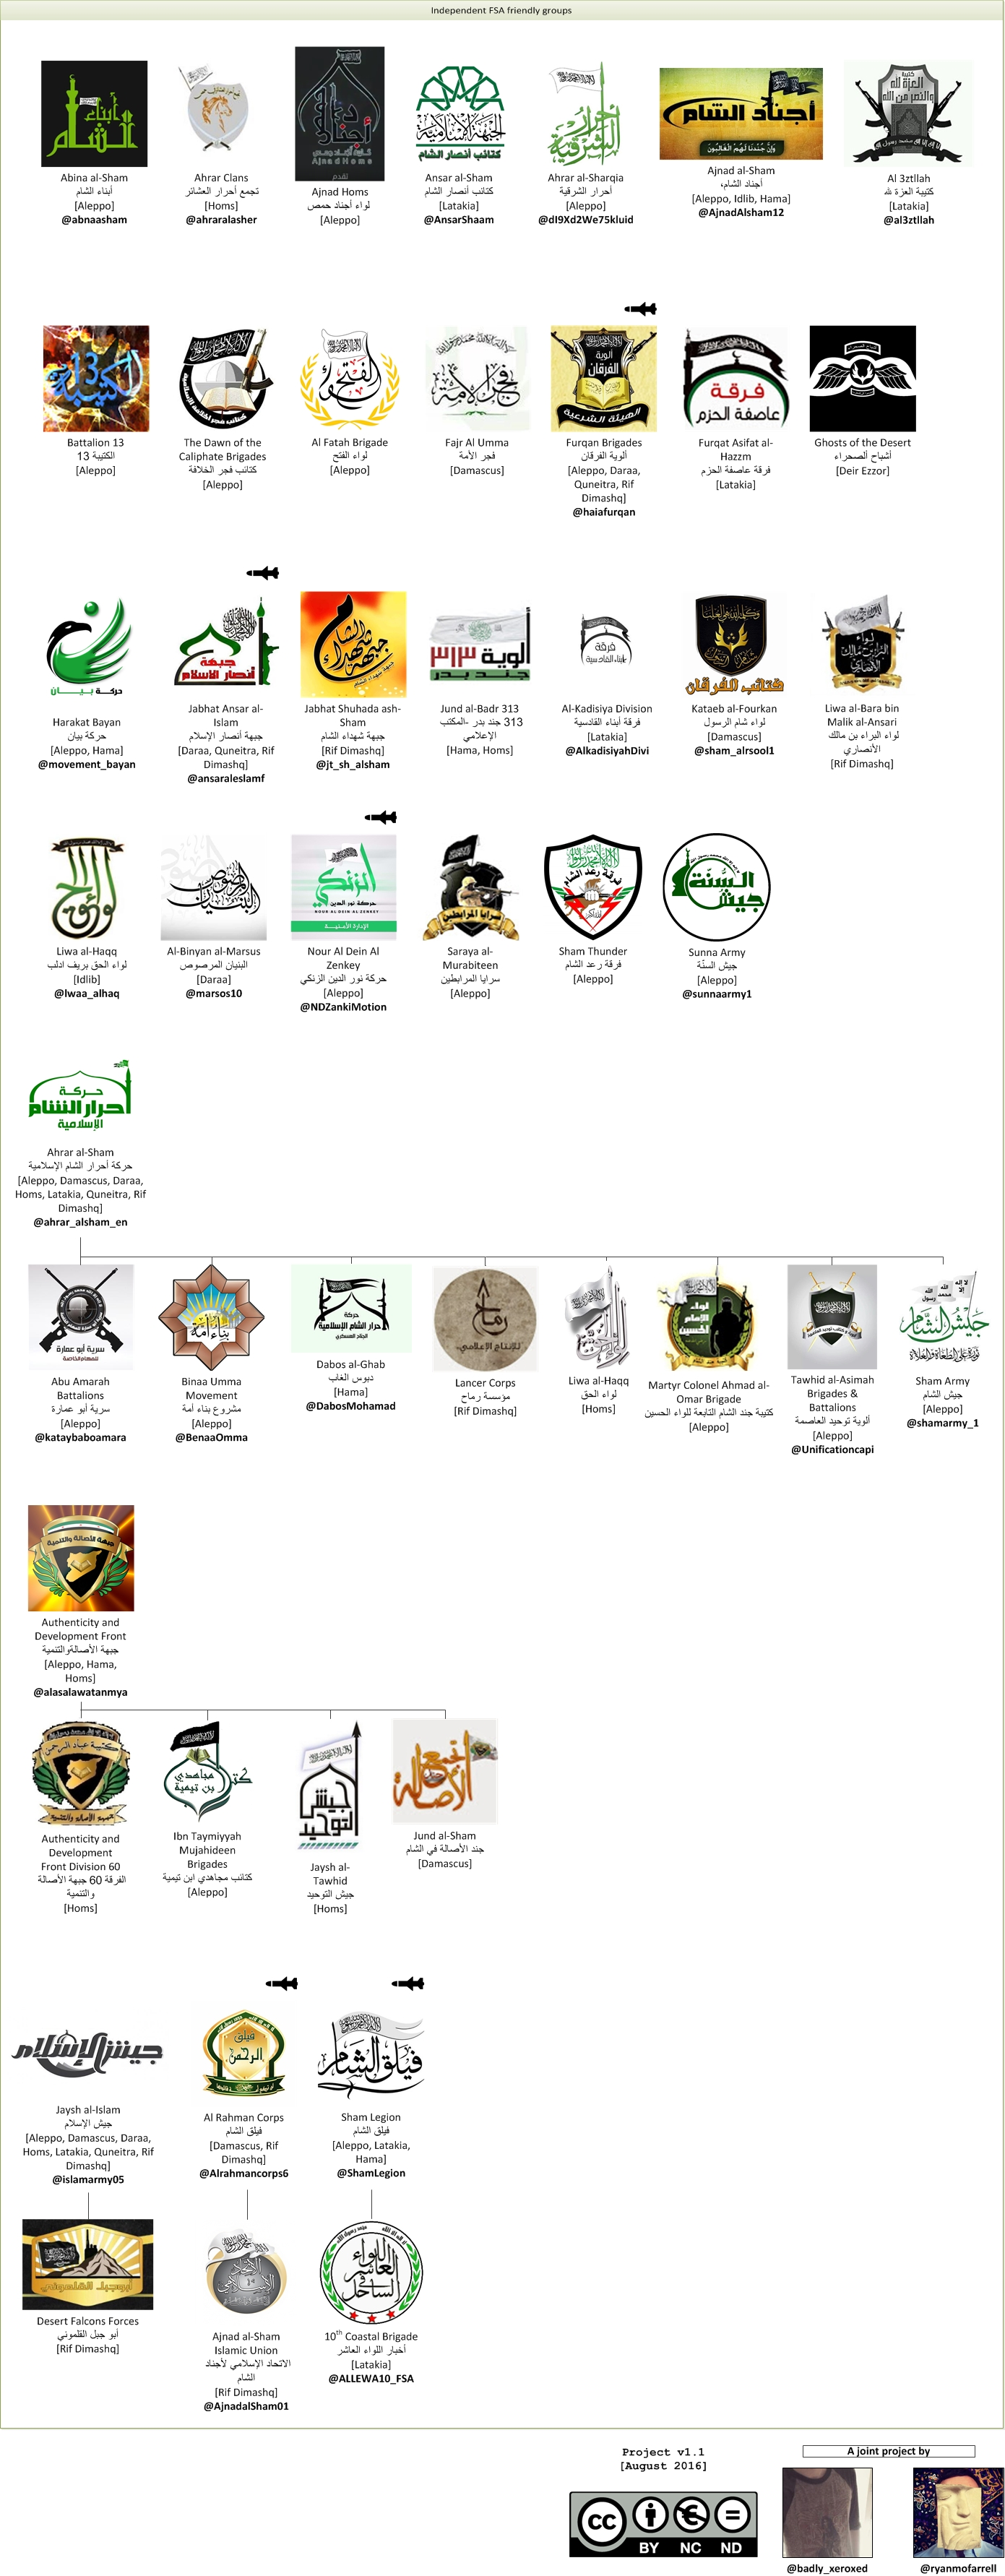 All independent FSA friendly groups— missile symbols indicate a faction has been supplied with BGM-71 TOW ATGMs